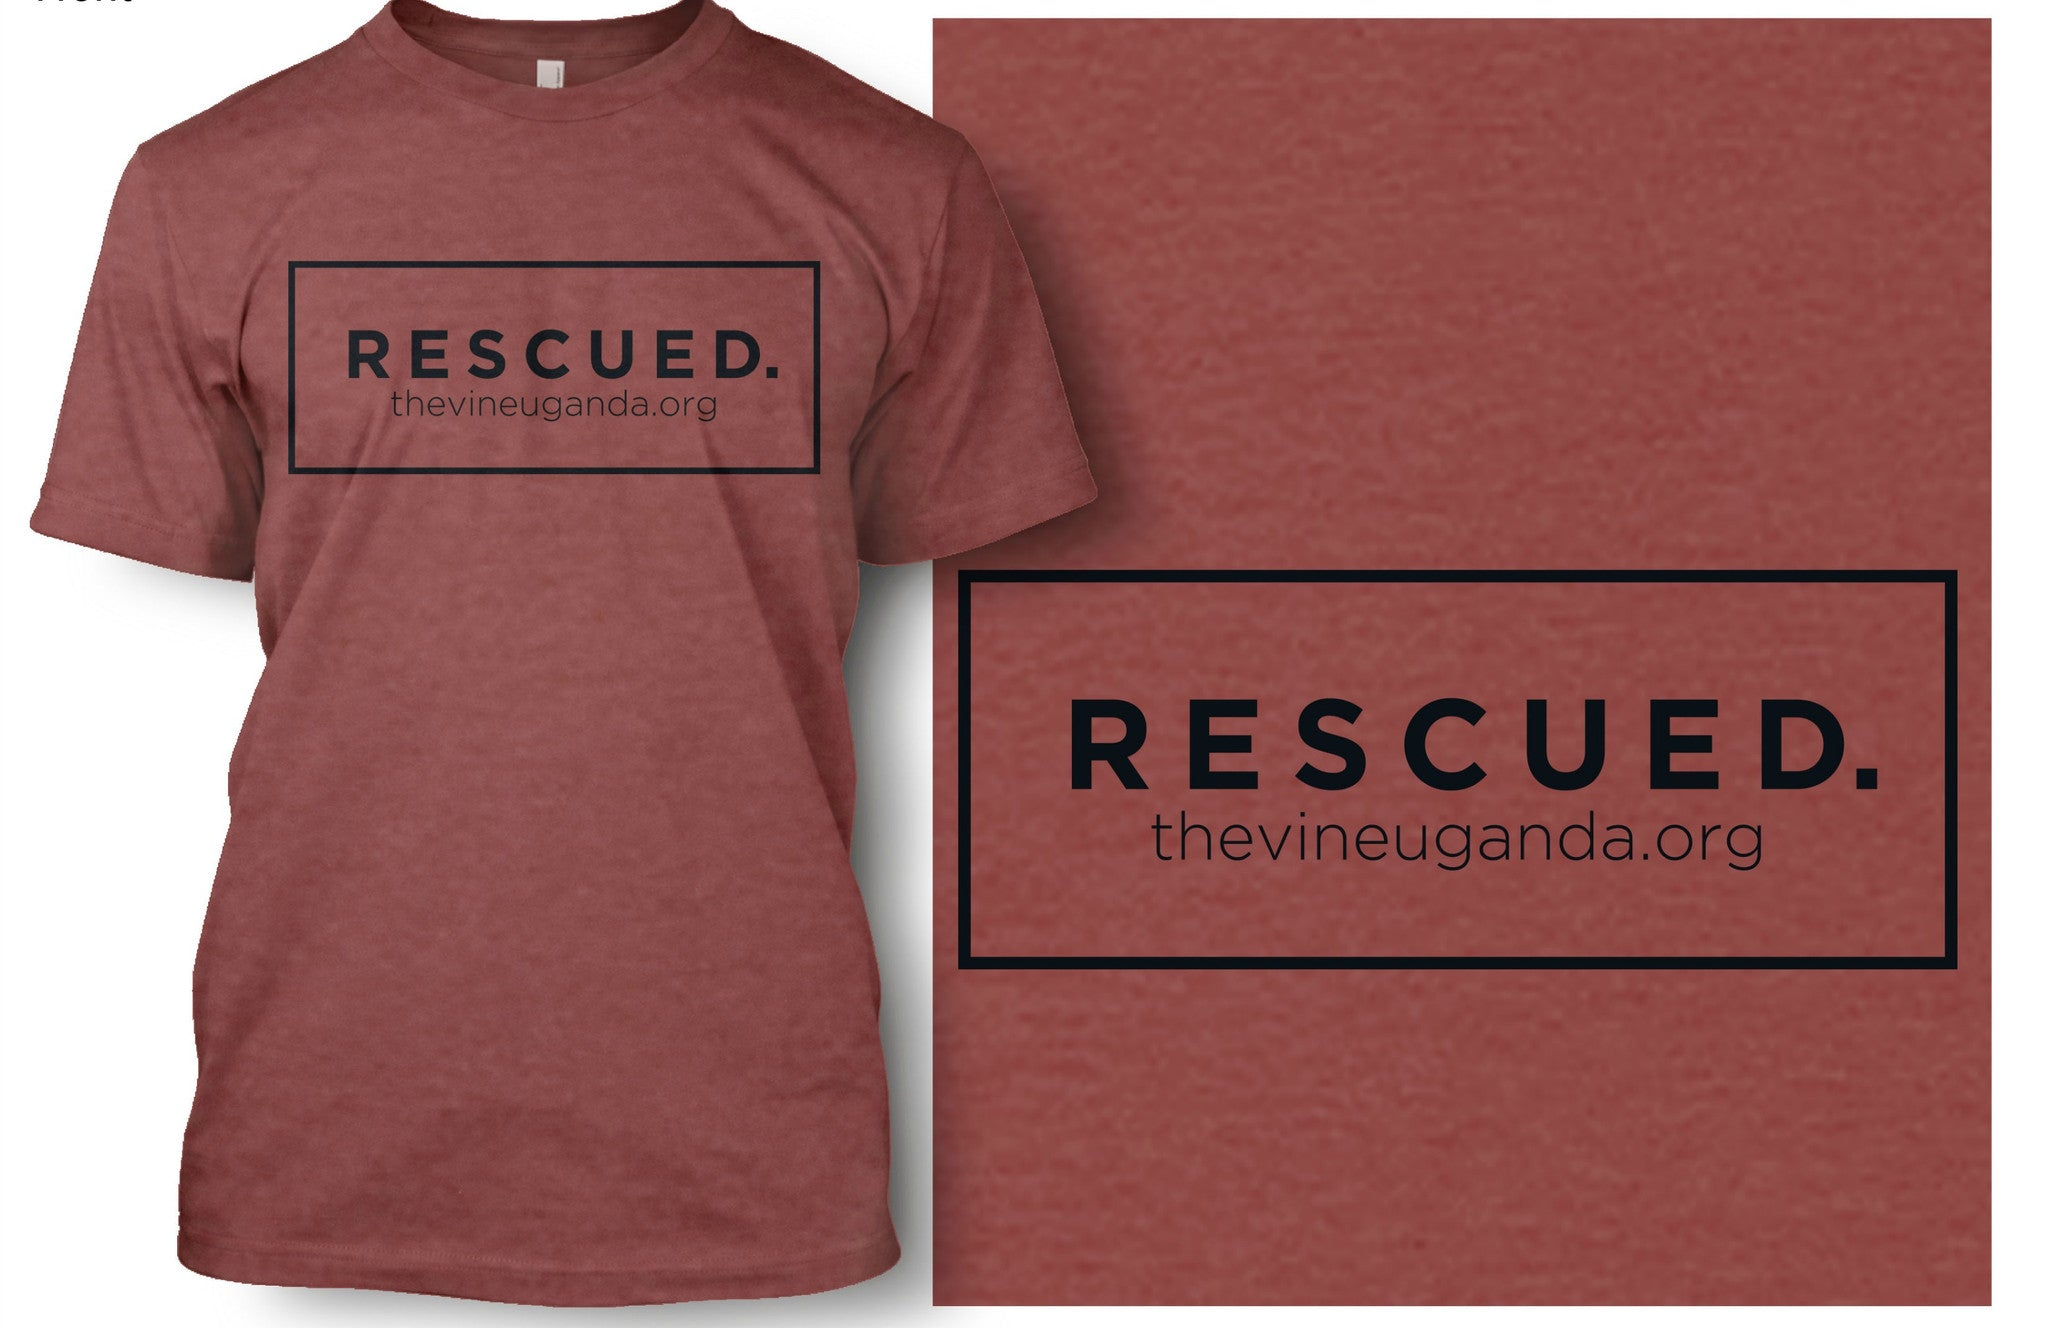 Rescued Box T-shirt (Denim Blue & Clay)